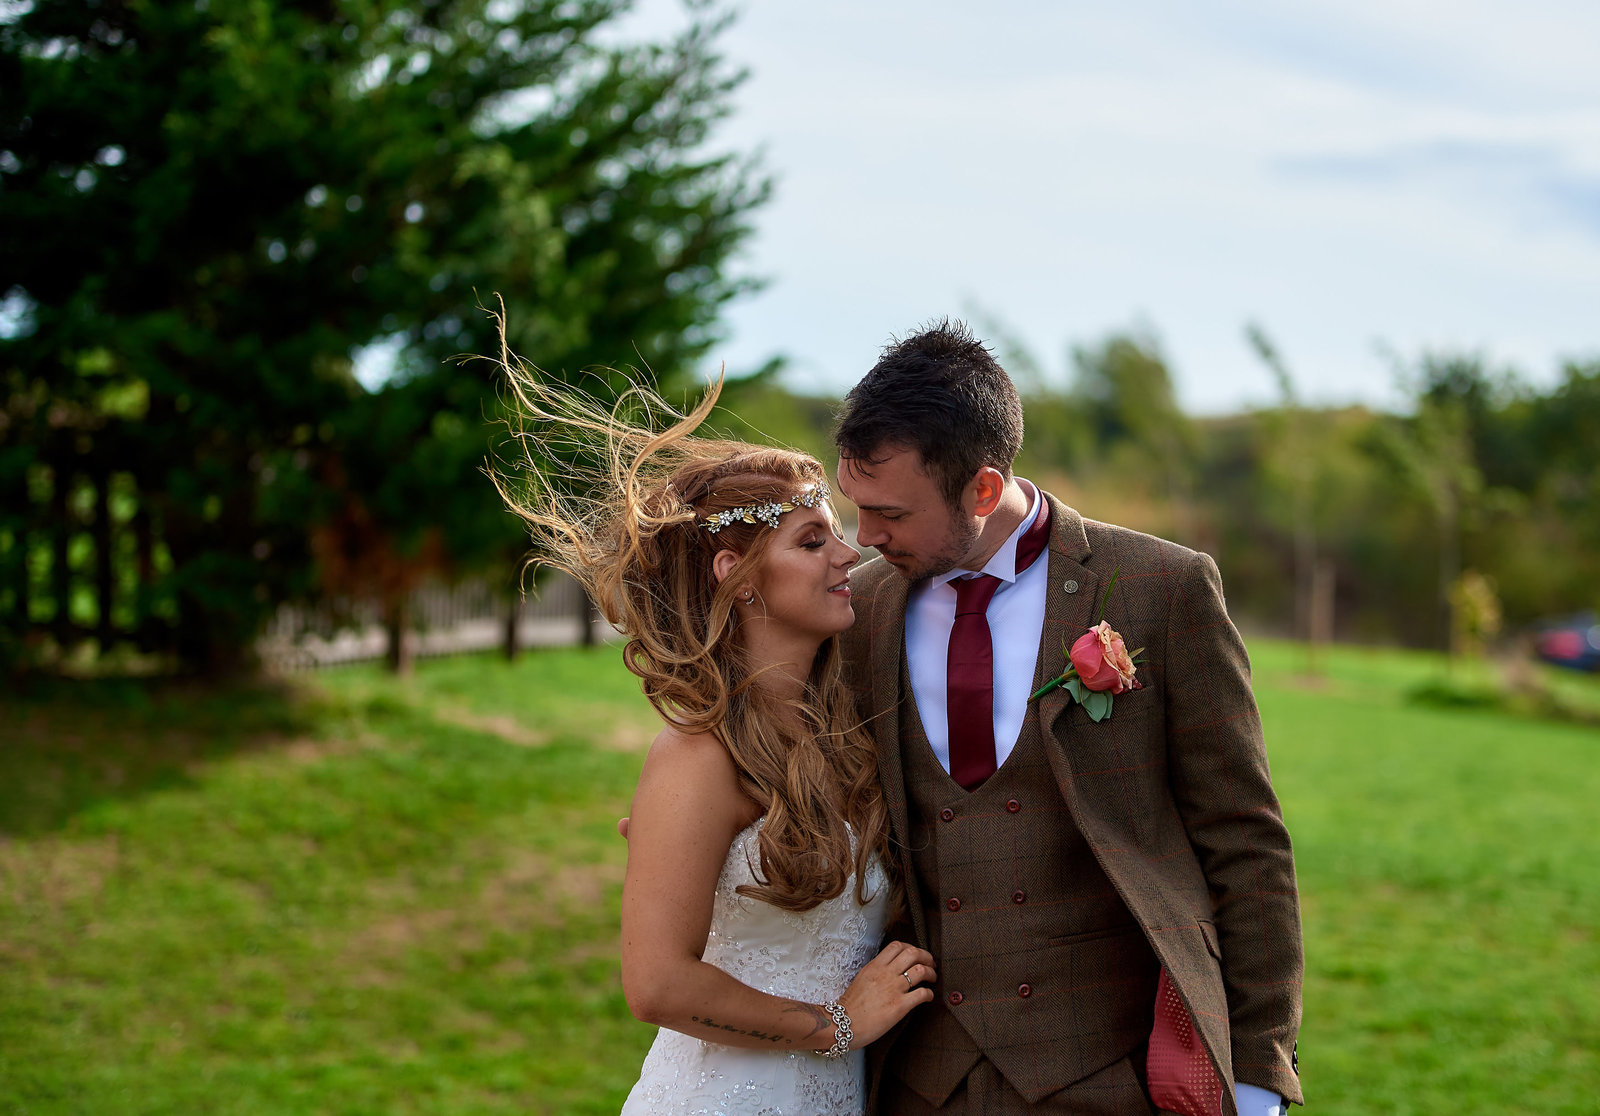 Bride and groom share a tender moment at three lakes wedding venue in ware - Essex wedding photographer